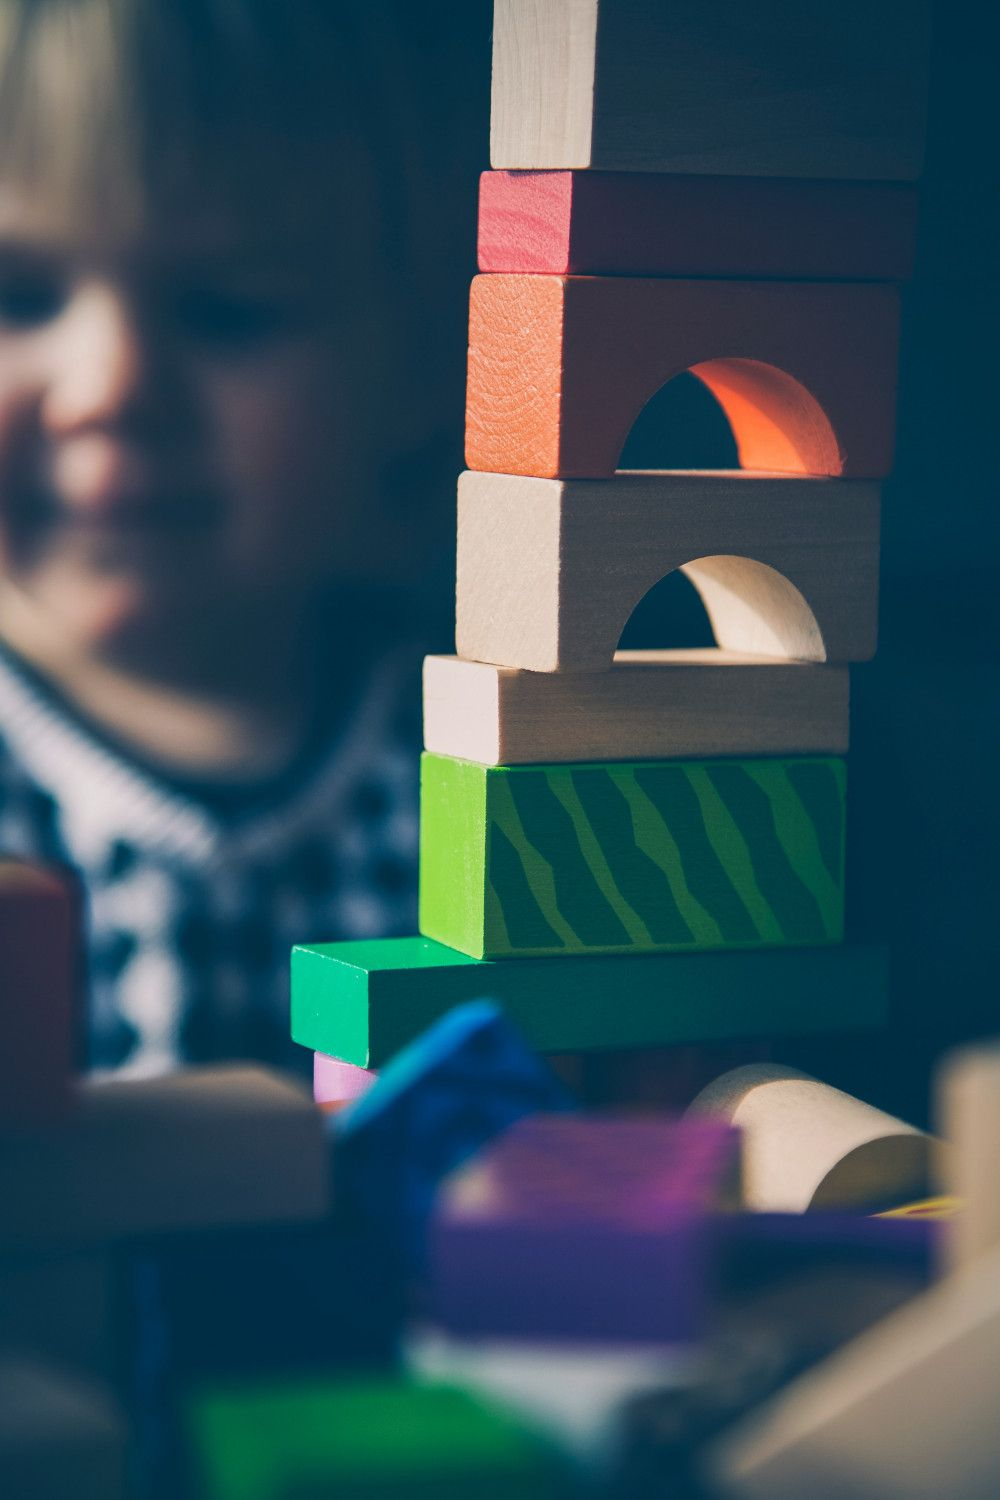 a child stood behind a tower made out of wooden play blocks